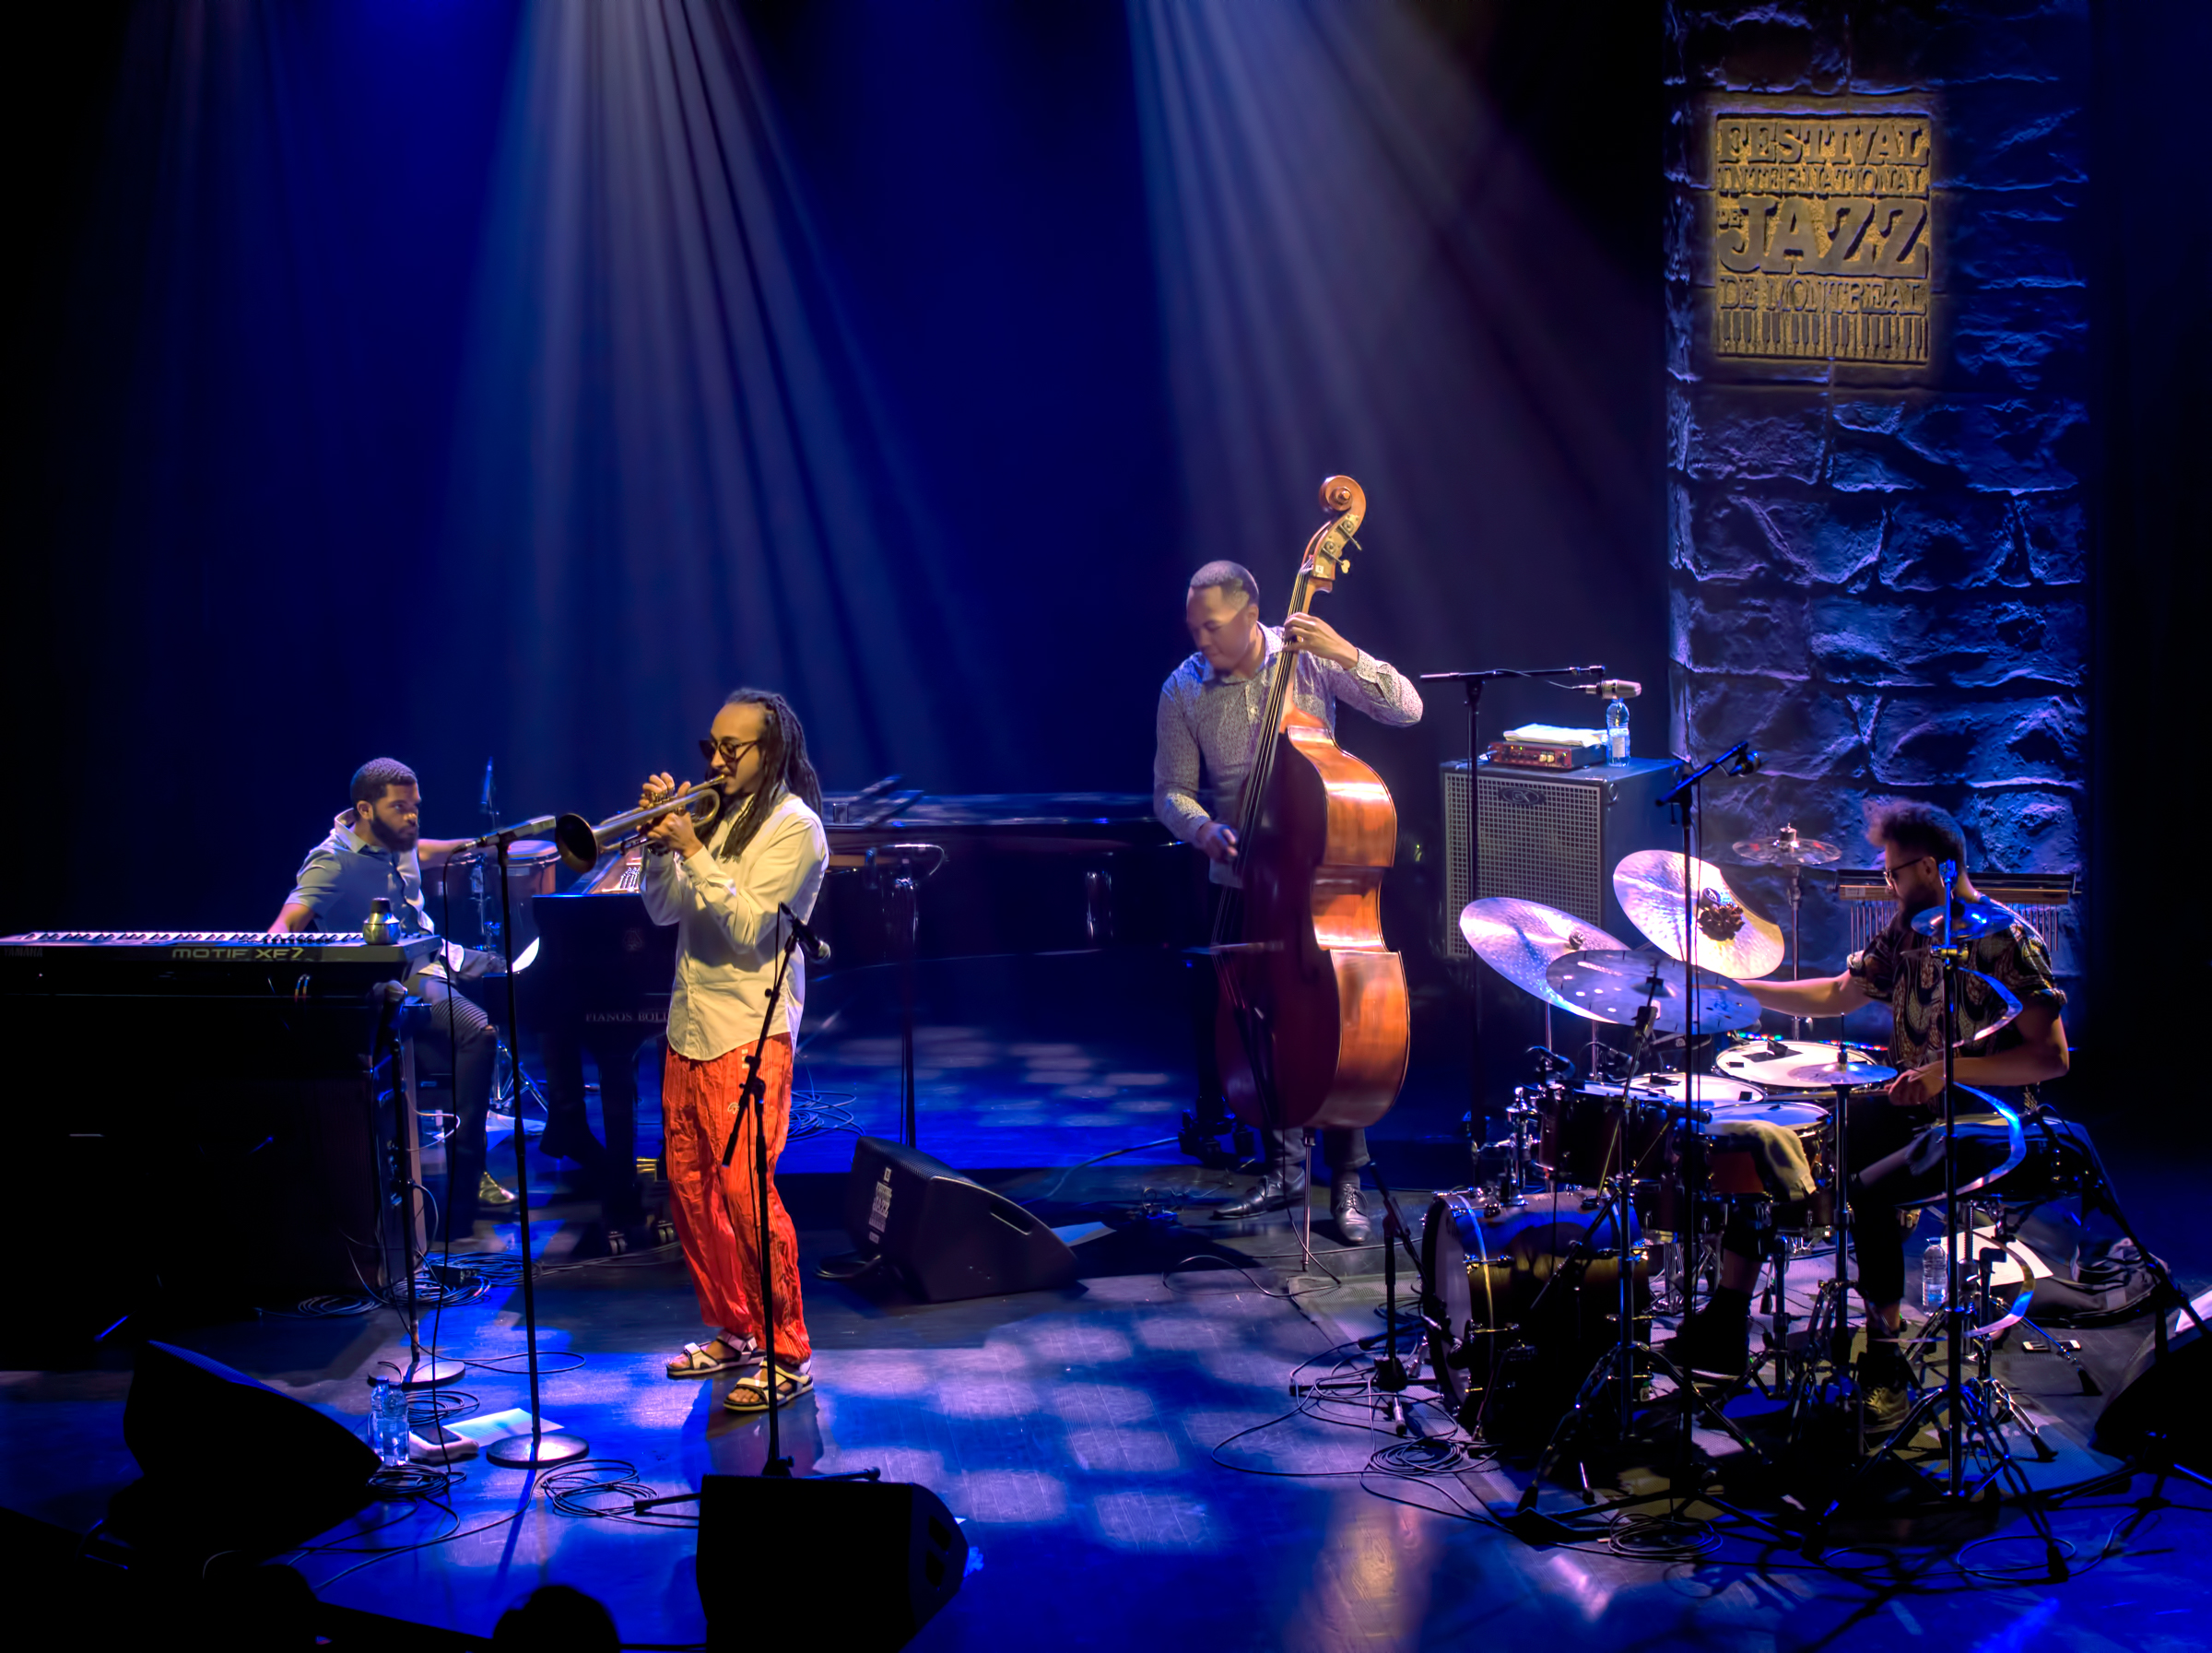 Mike King, Theo Croker, Eric Wheeler And Kassa Overall At The Montreal International Jazz Festival 2018